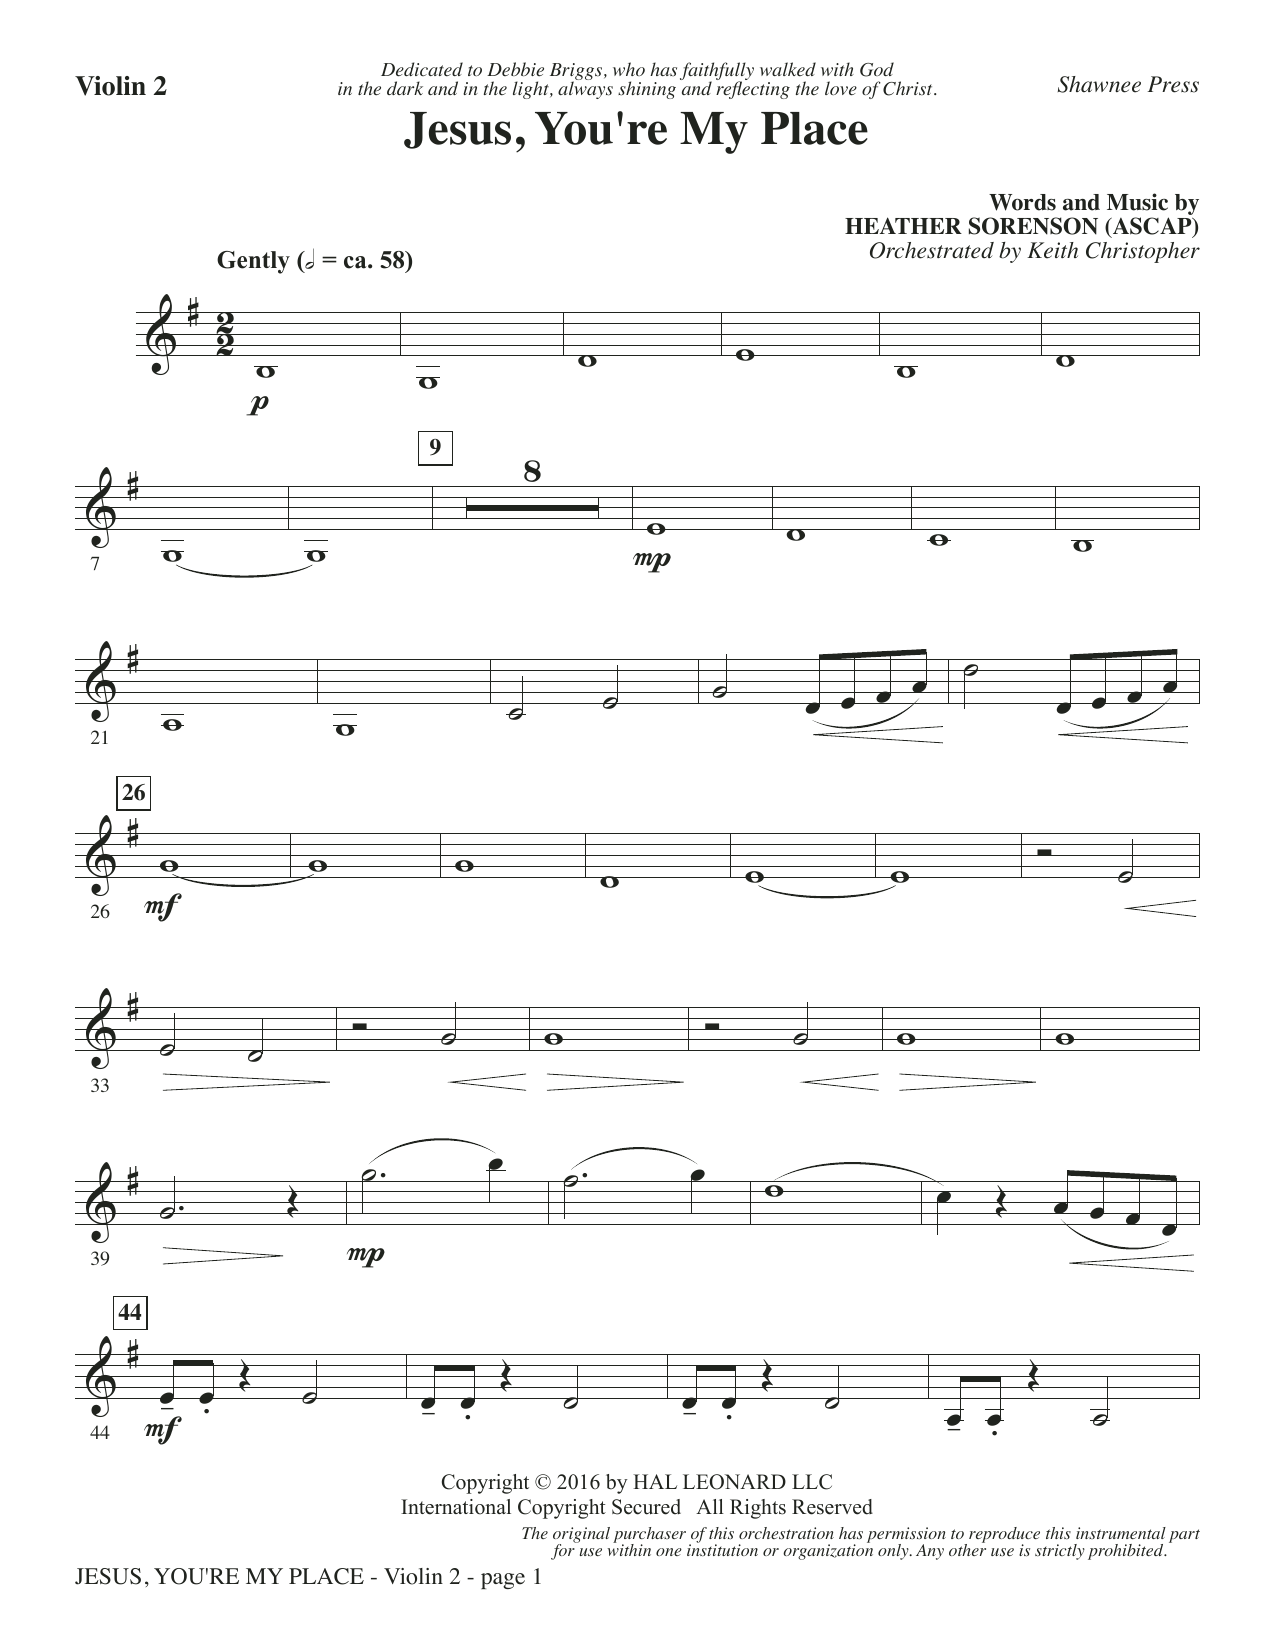 Jesus, You're My Place - Violin 2 Sheet Music